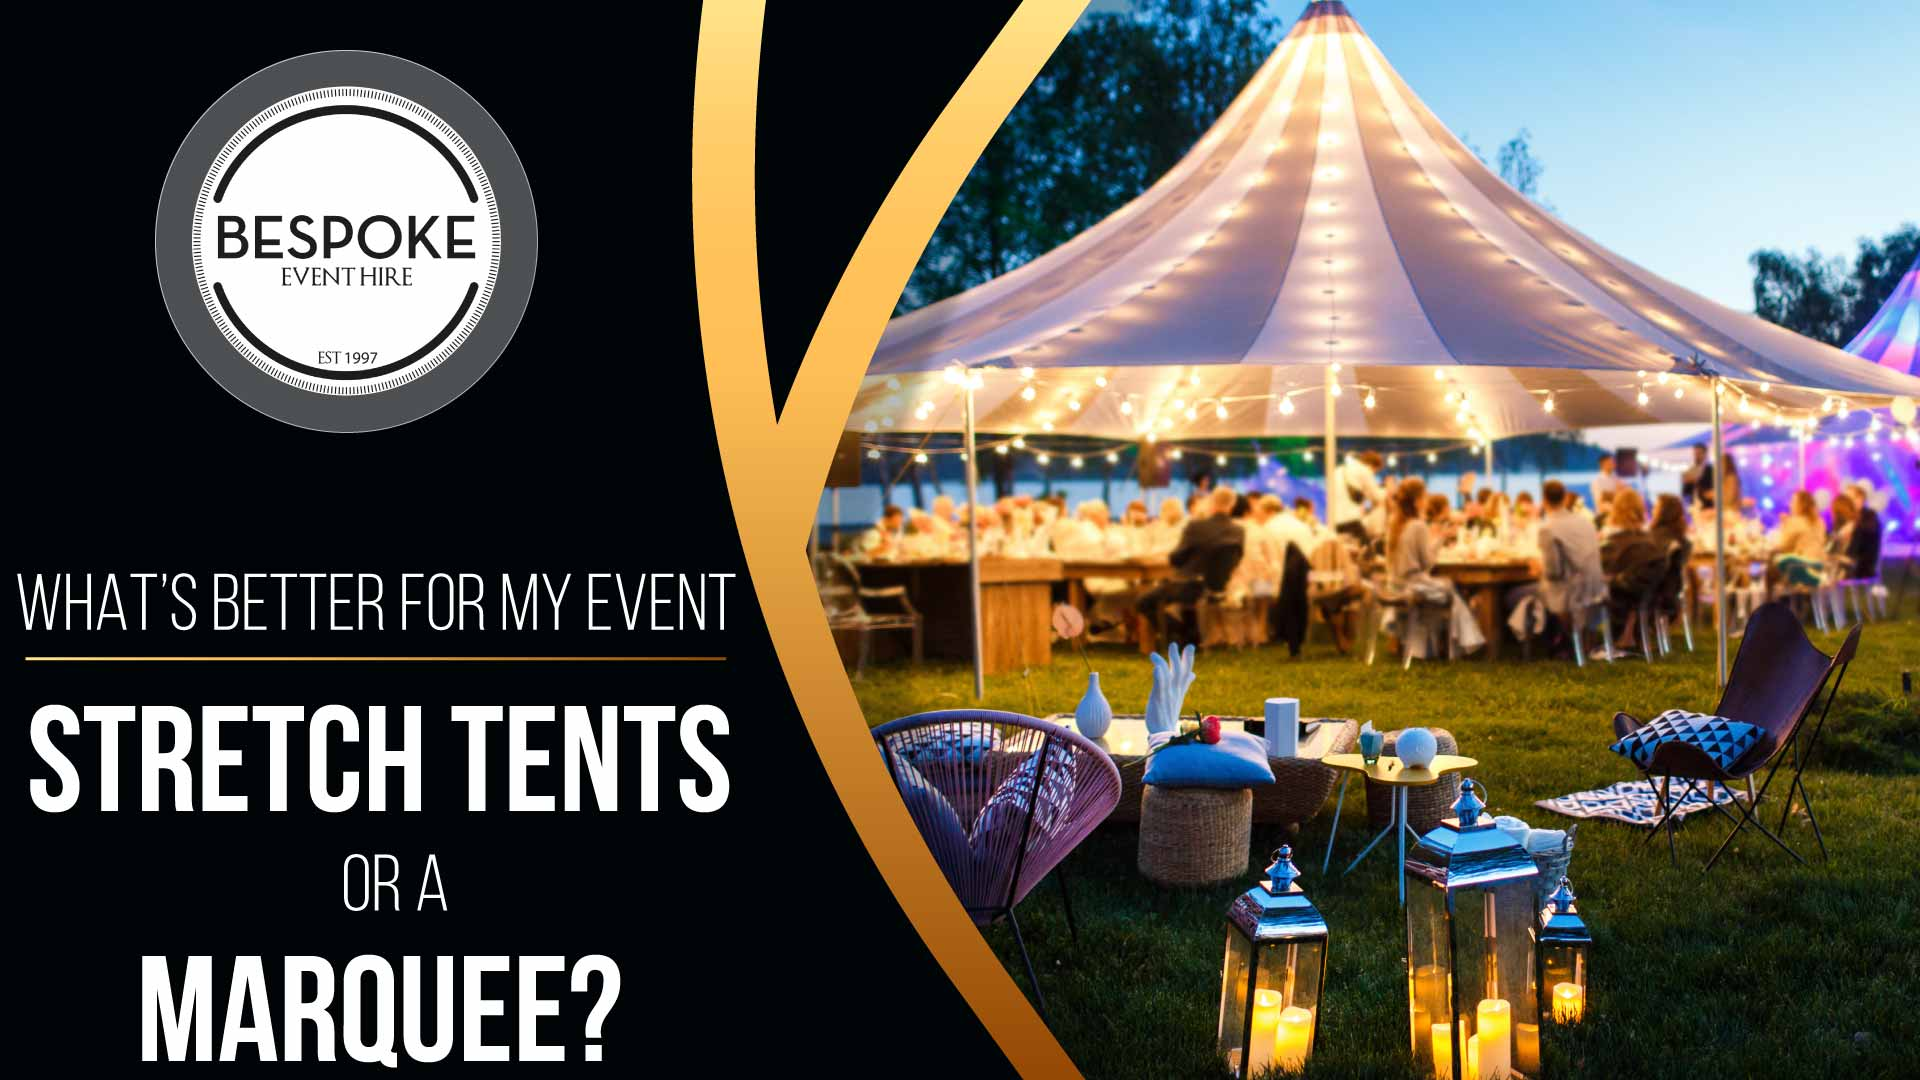 marquee-tent-event-party-lights-people.jpg